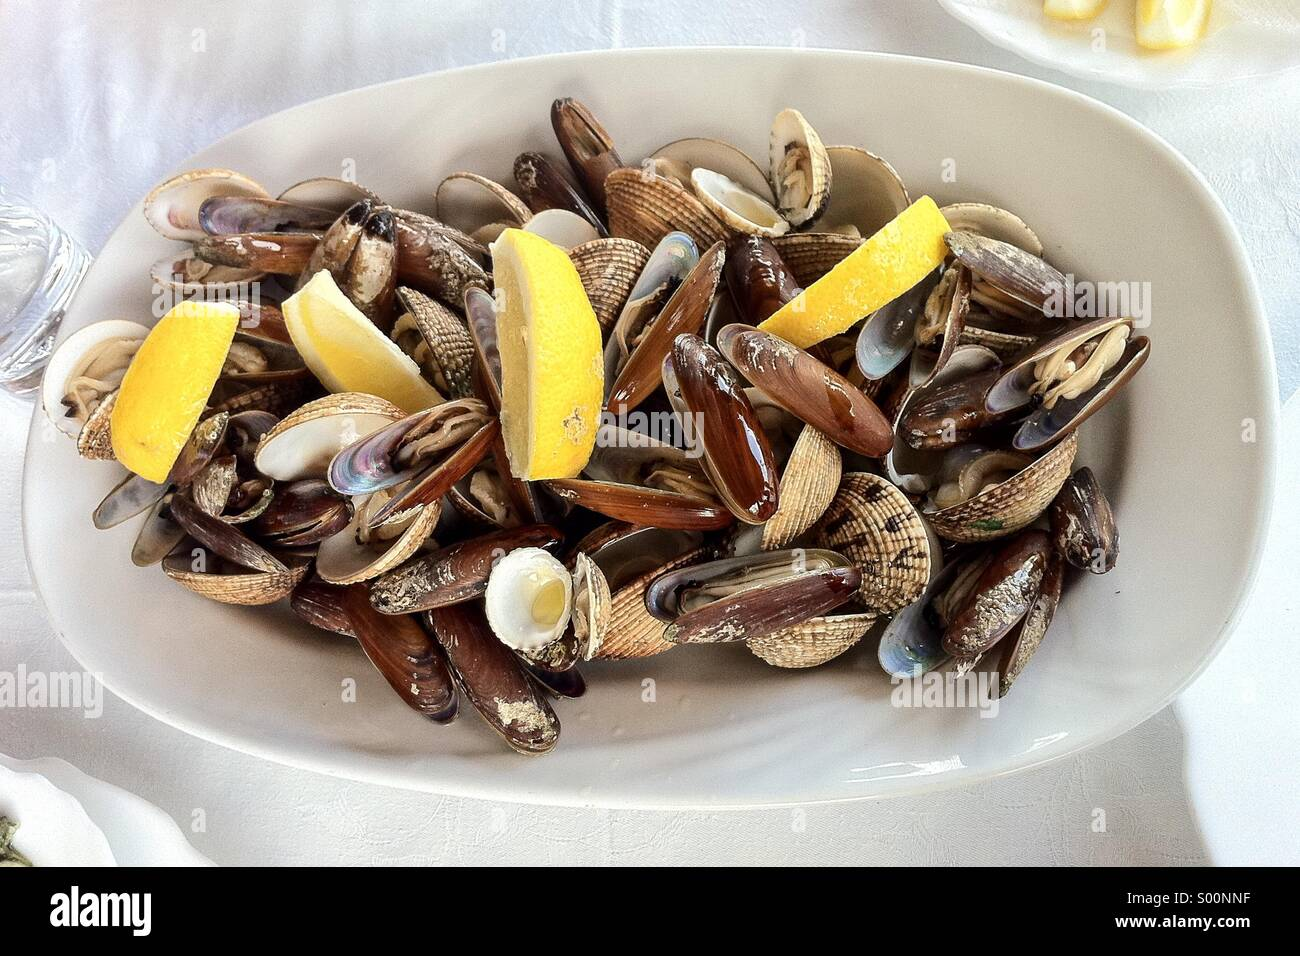 Sea food platter shells - Stock Image